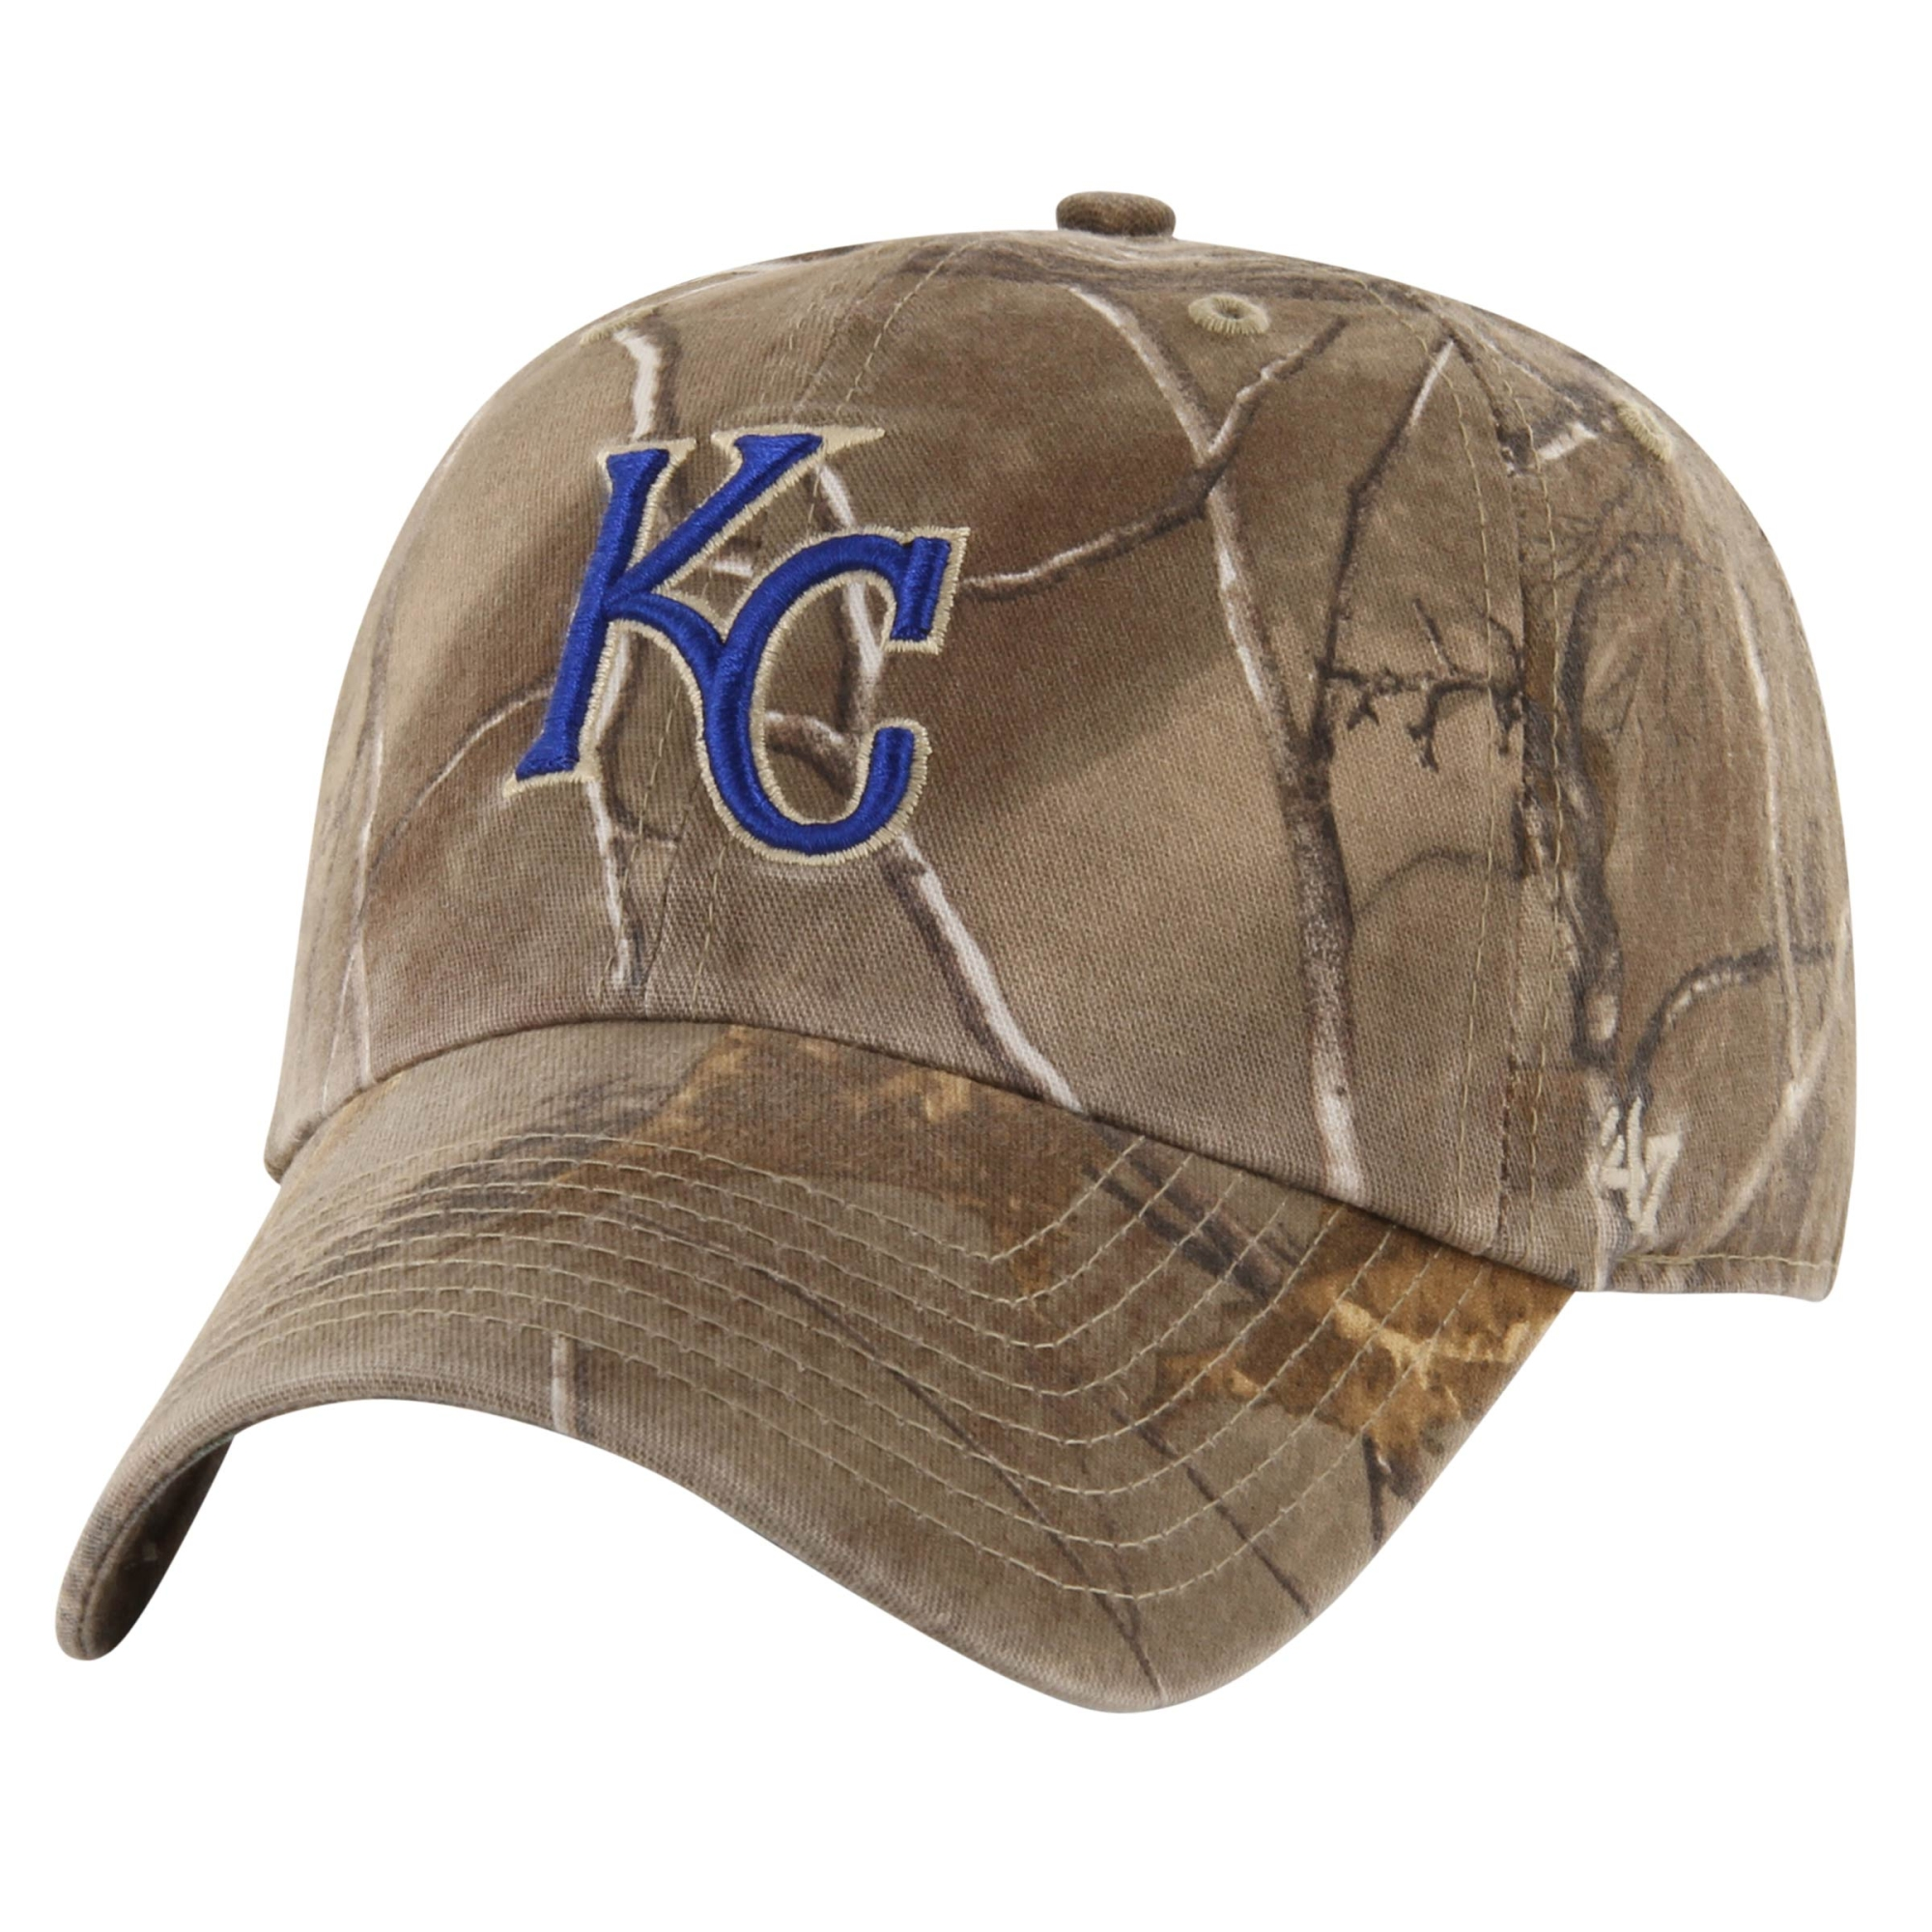 '47 Brand Kansas City Royals Franchise Fitted Hat - Realtree Camo